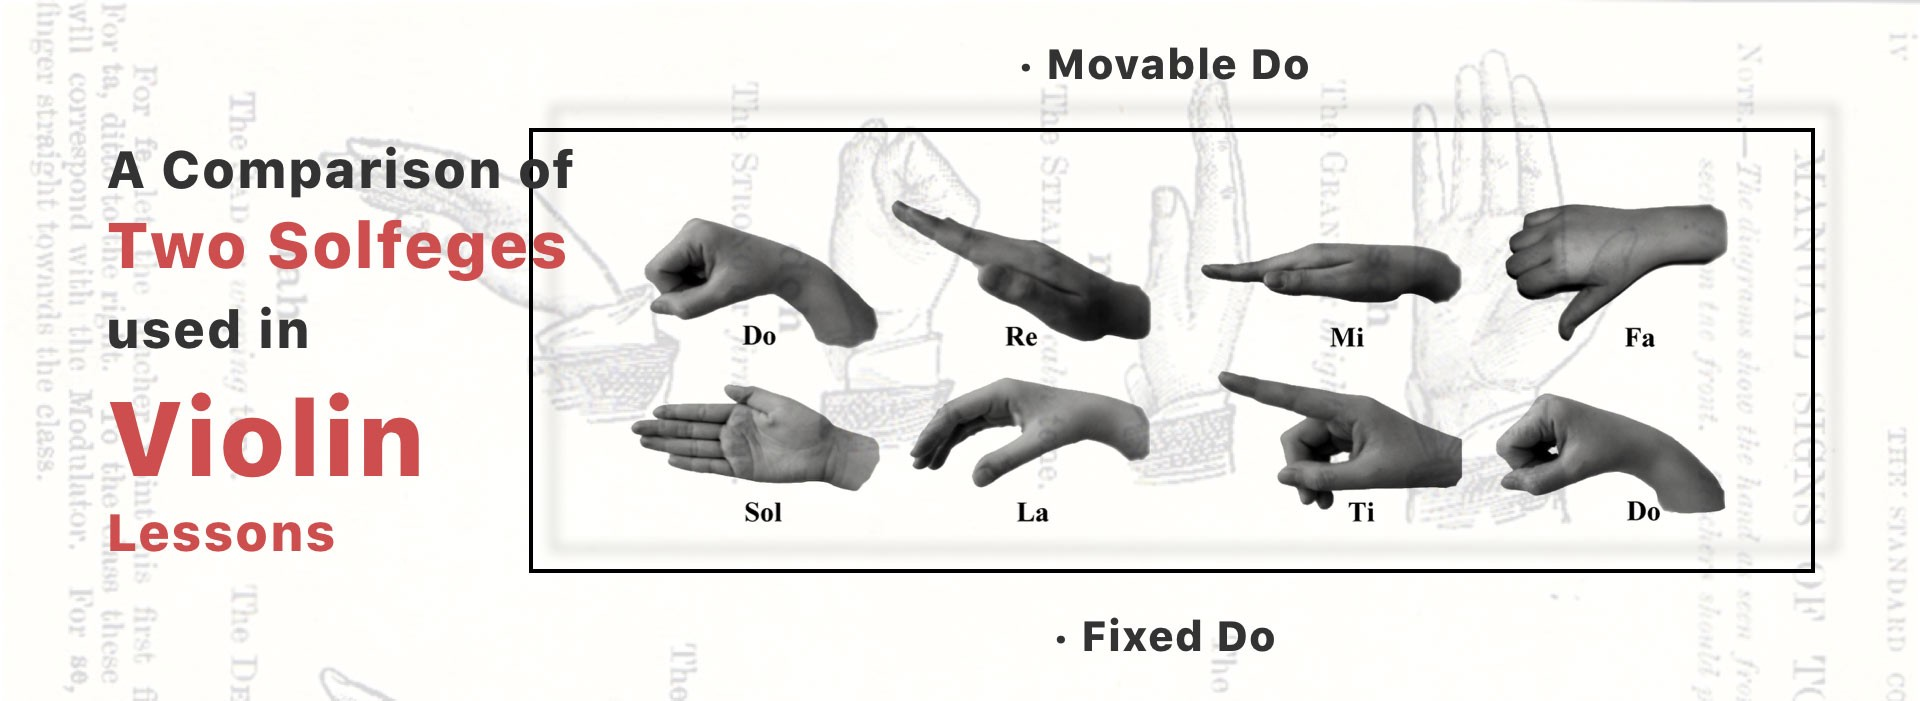 A Comparison of Movable Do & Fixed Do   Solfeges used in Violin ...